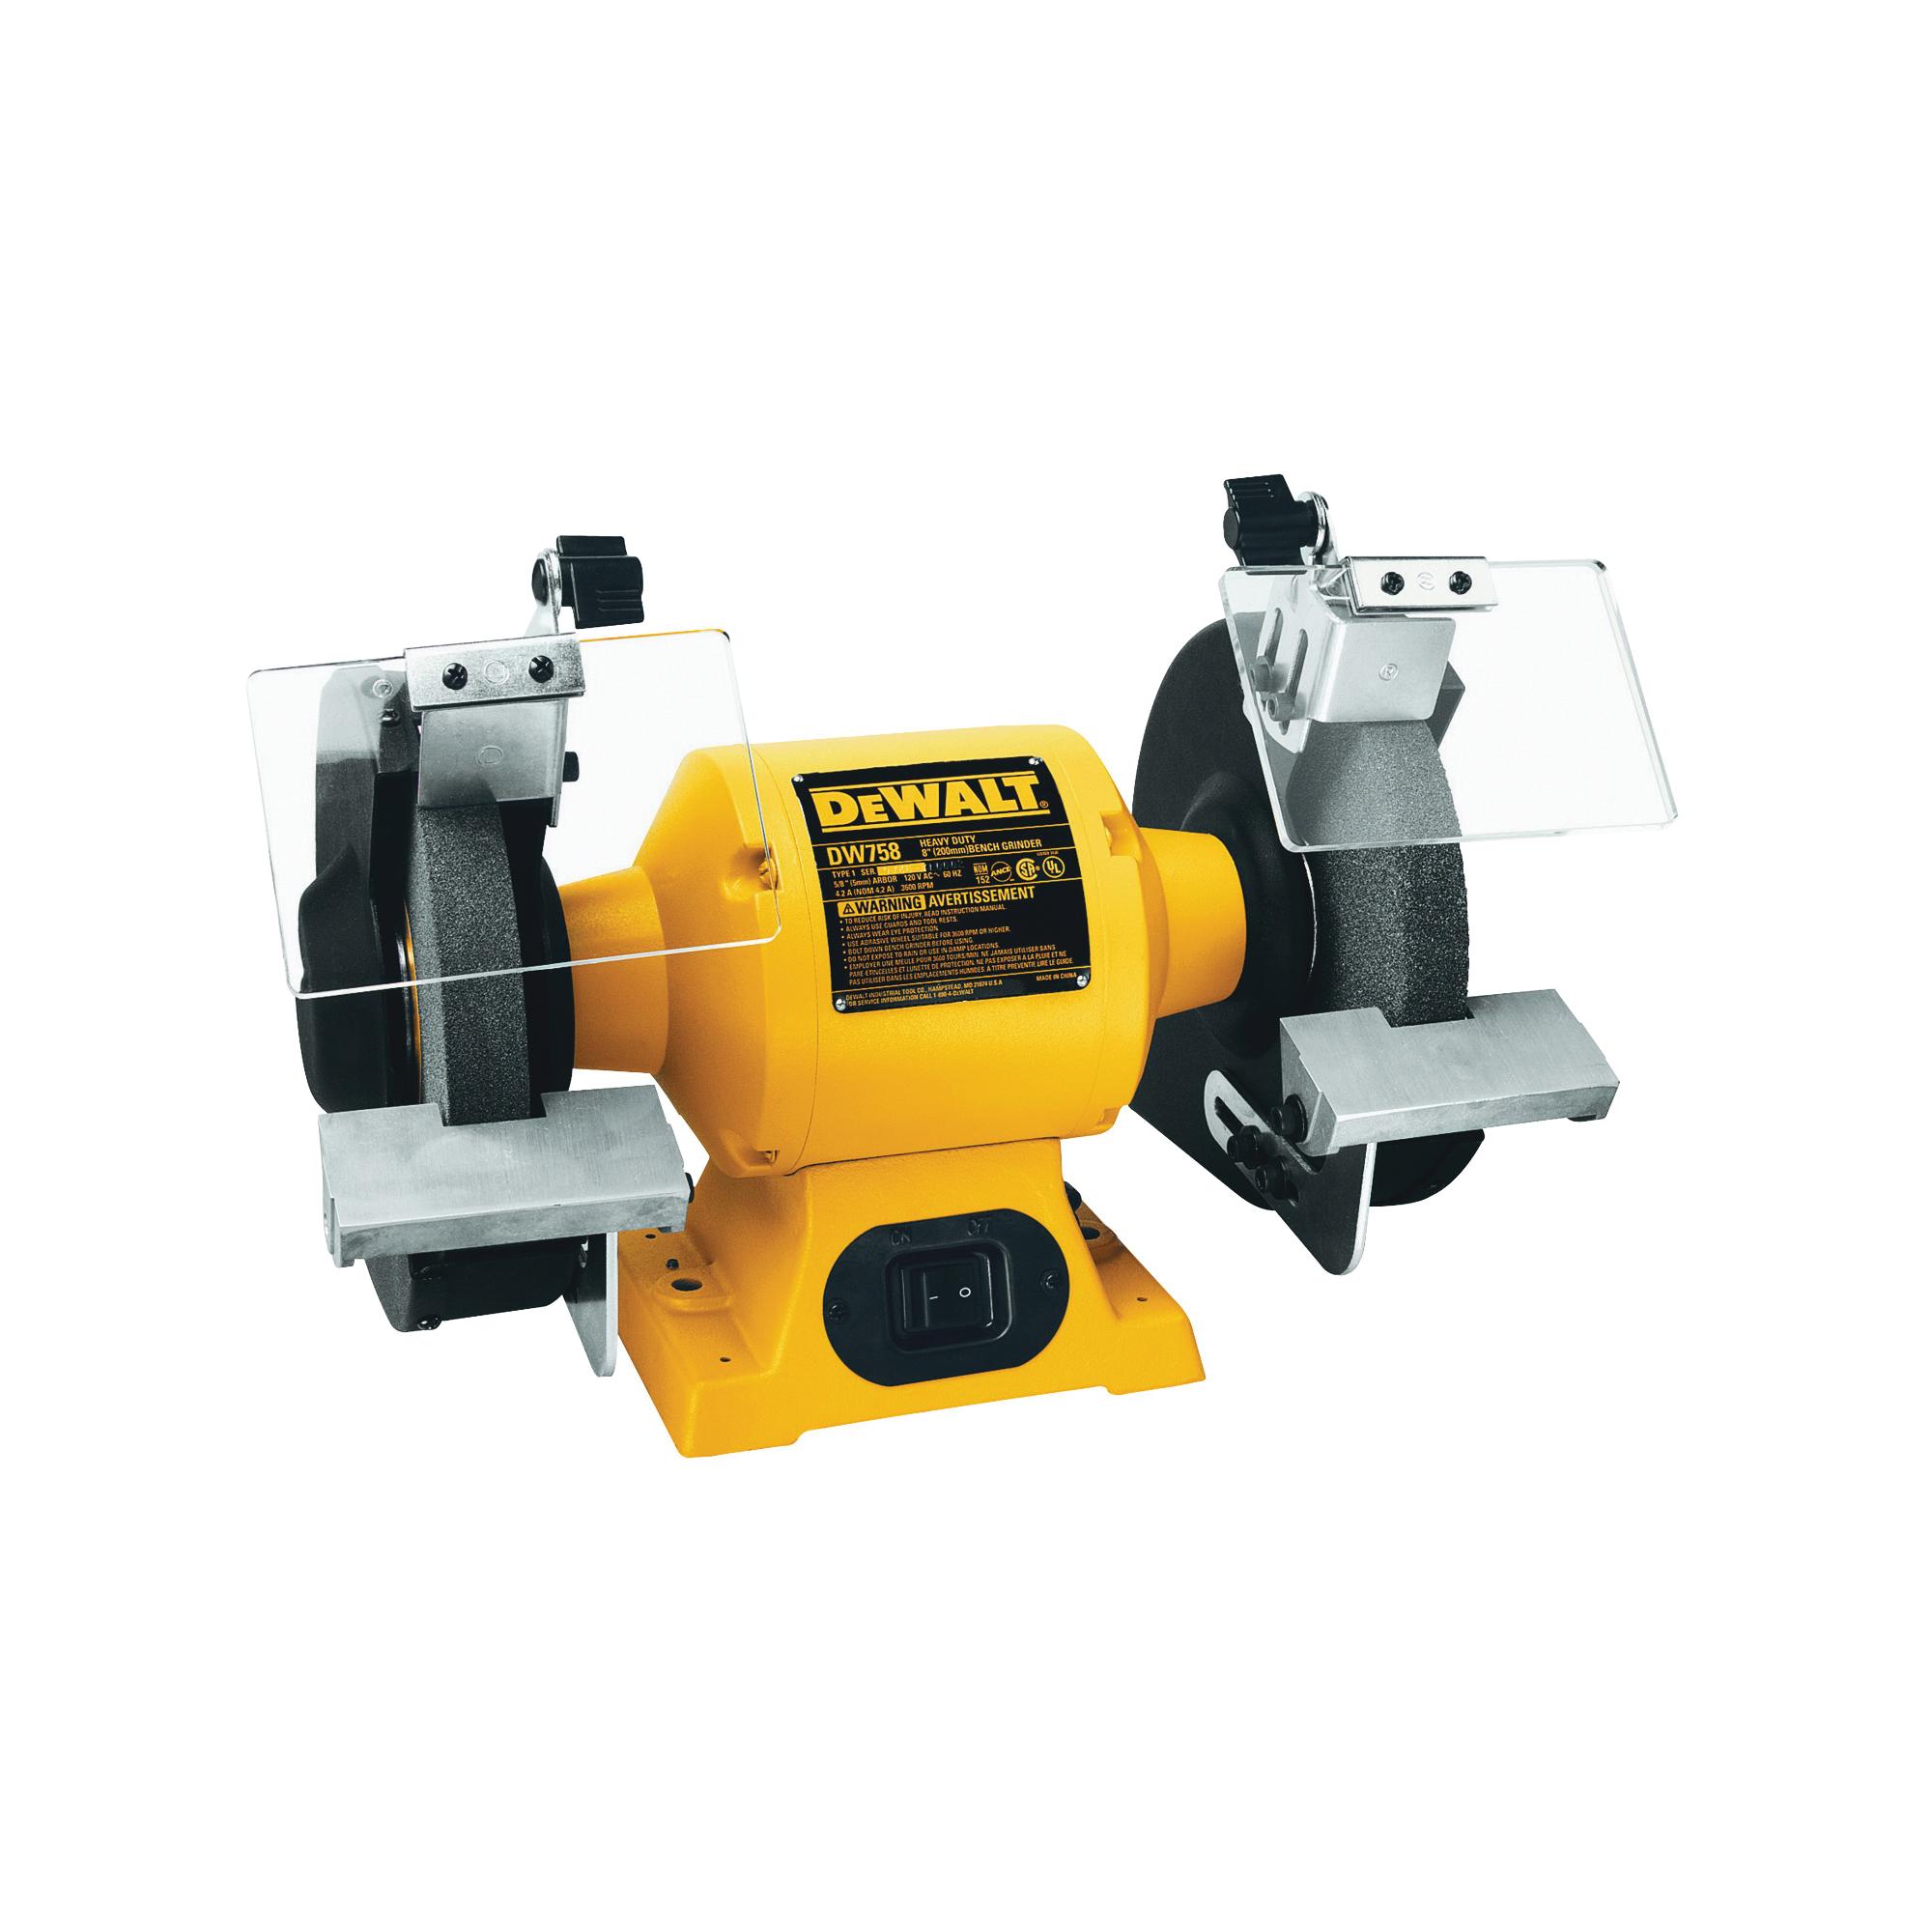 Picture of DeWALT DW758 Bench Grinder, 120 V, 4.2 A, 5/8 in Arbor/Spindle, 8 in Dia Wheel, 3600 rpm Speed